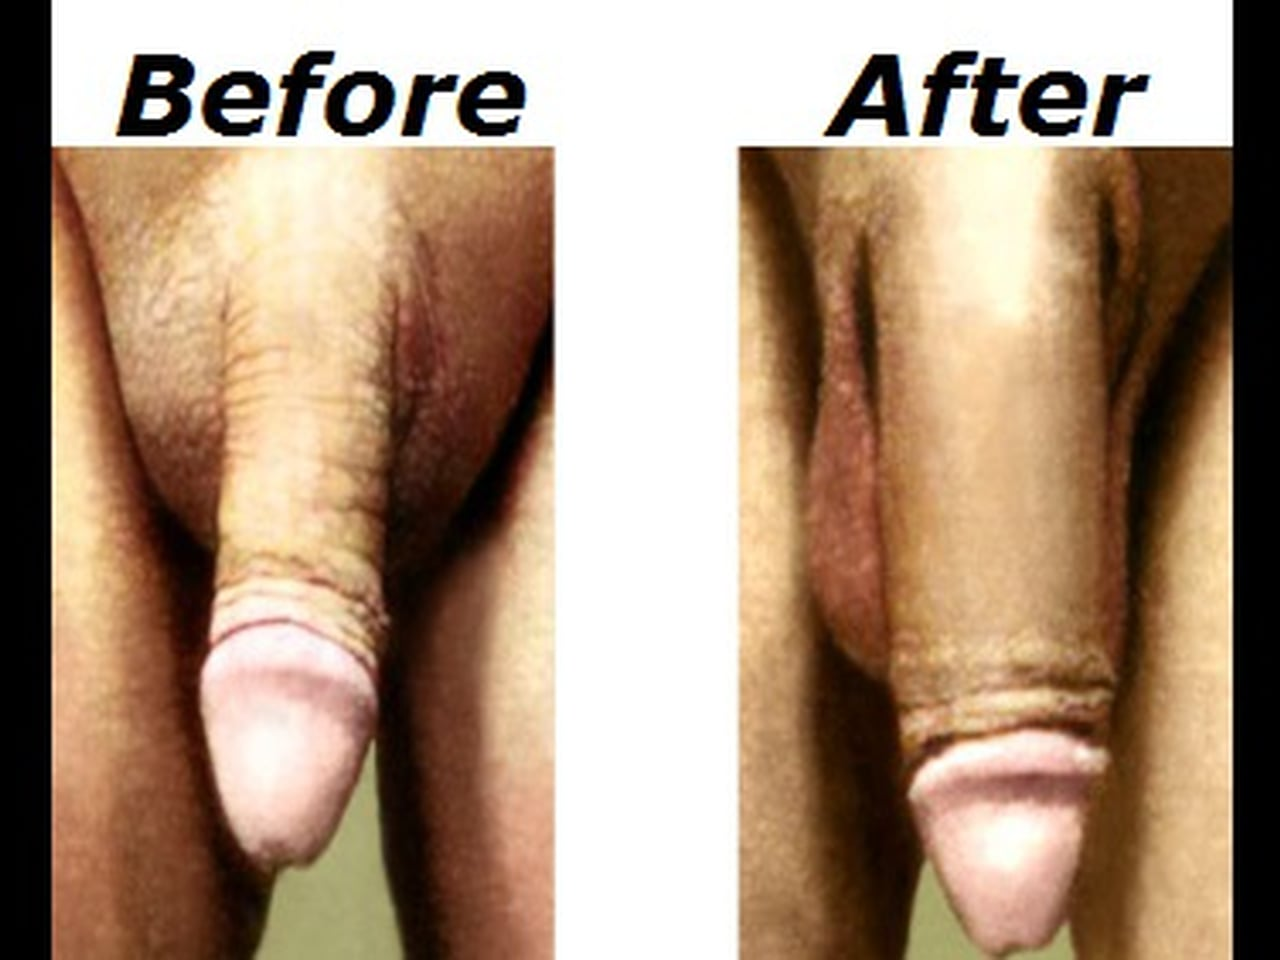 A pain free and safe alternative to penis enlargement surgery